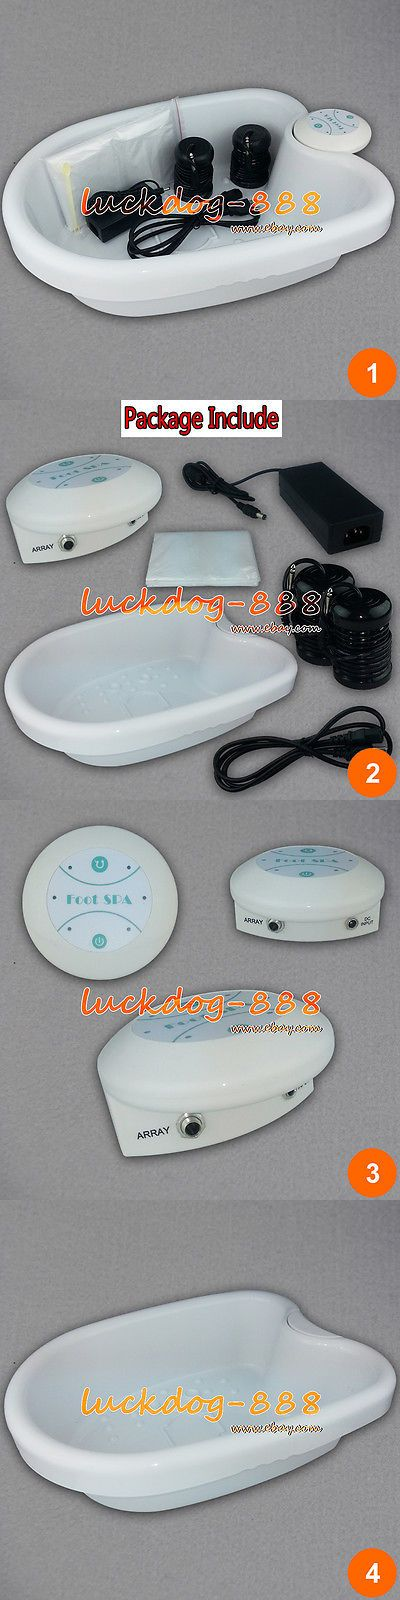 Ion Foot Baths: 2017 Ionic Detox Foot Bath Aqua Cleanse Spa With Tub Machine 10 Liners 2 Arrays -> BUY IT NOW ONLY: $104.93 on eBay!